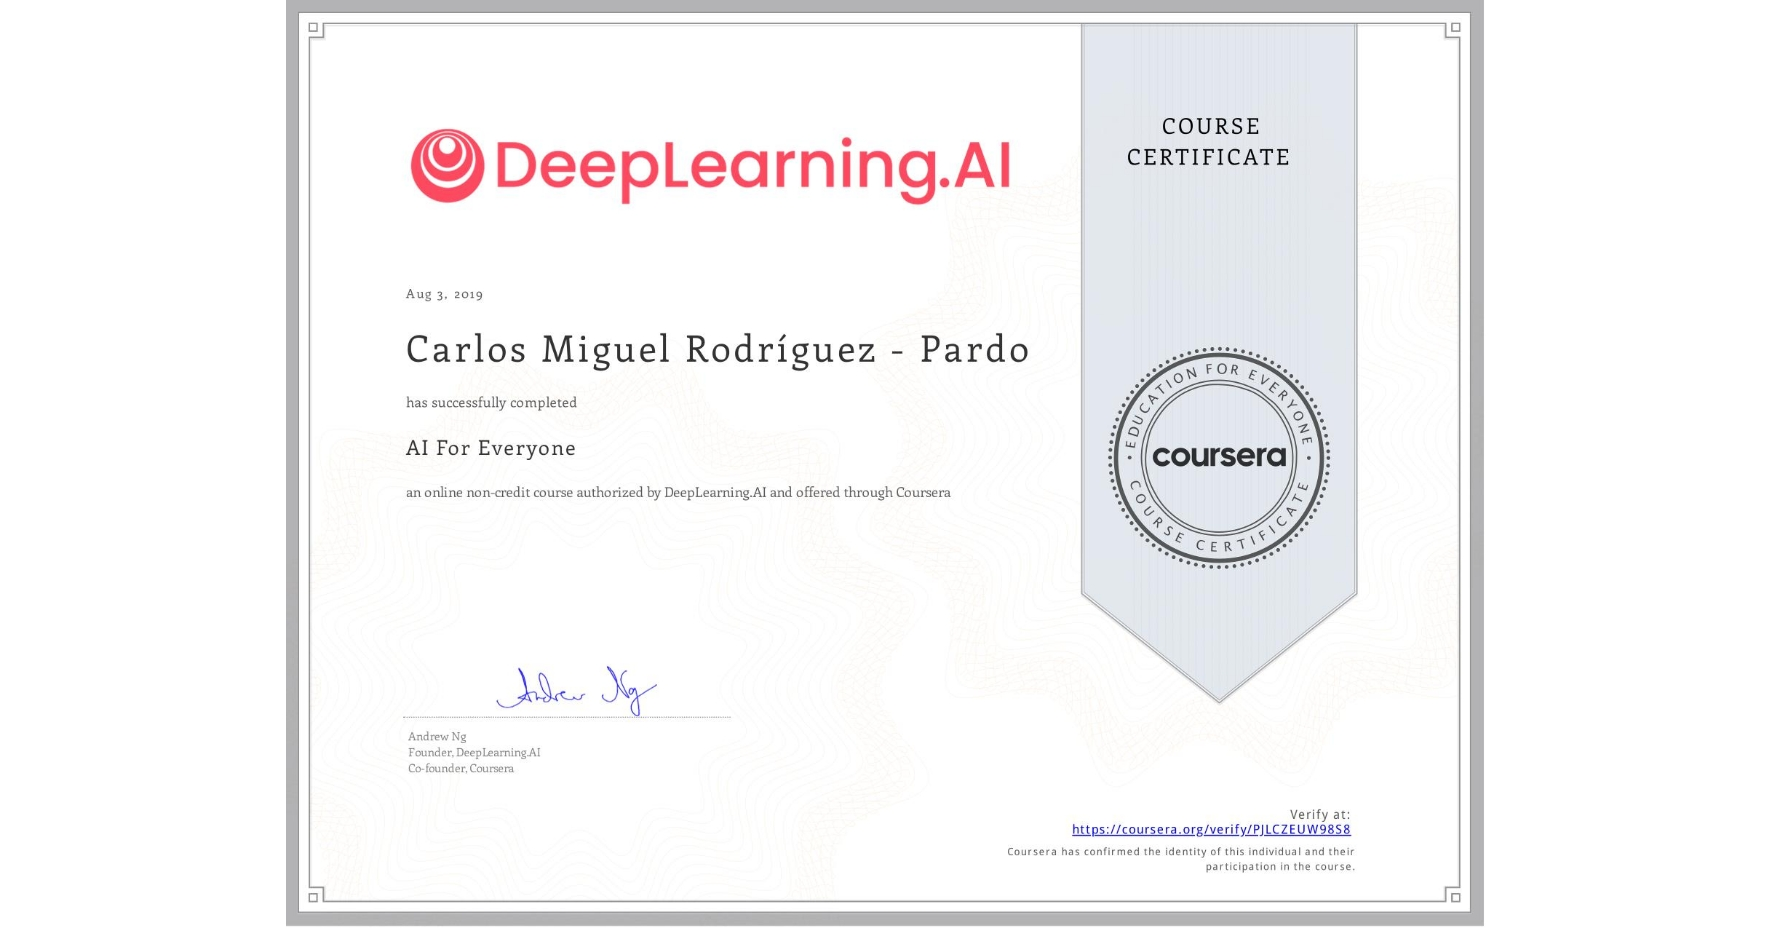 View certificate for Carlos Miguel Rodríguez - Pardo, AI For Everyone, an online non-credit course authorized by DeepLearning.AI and offered through Coursera